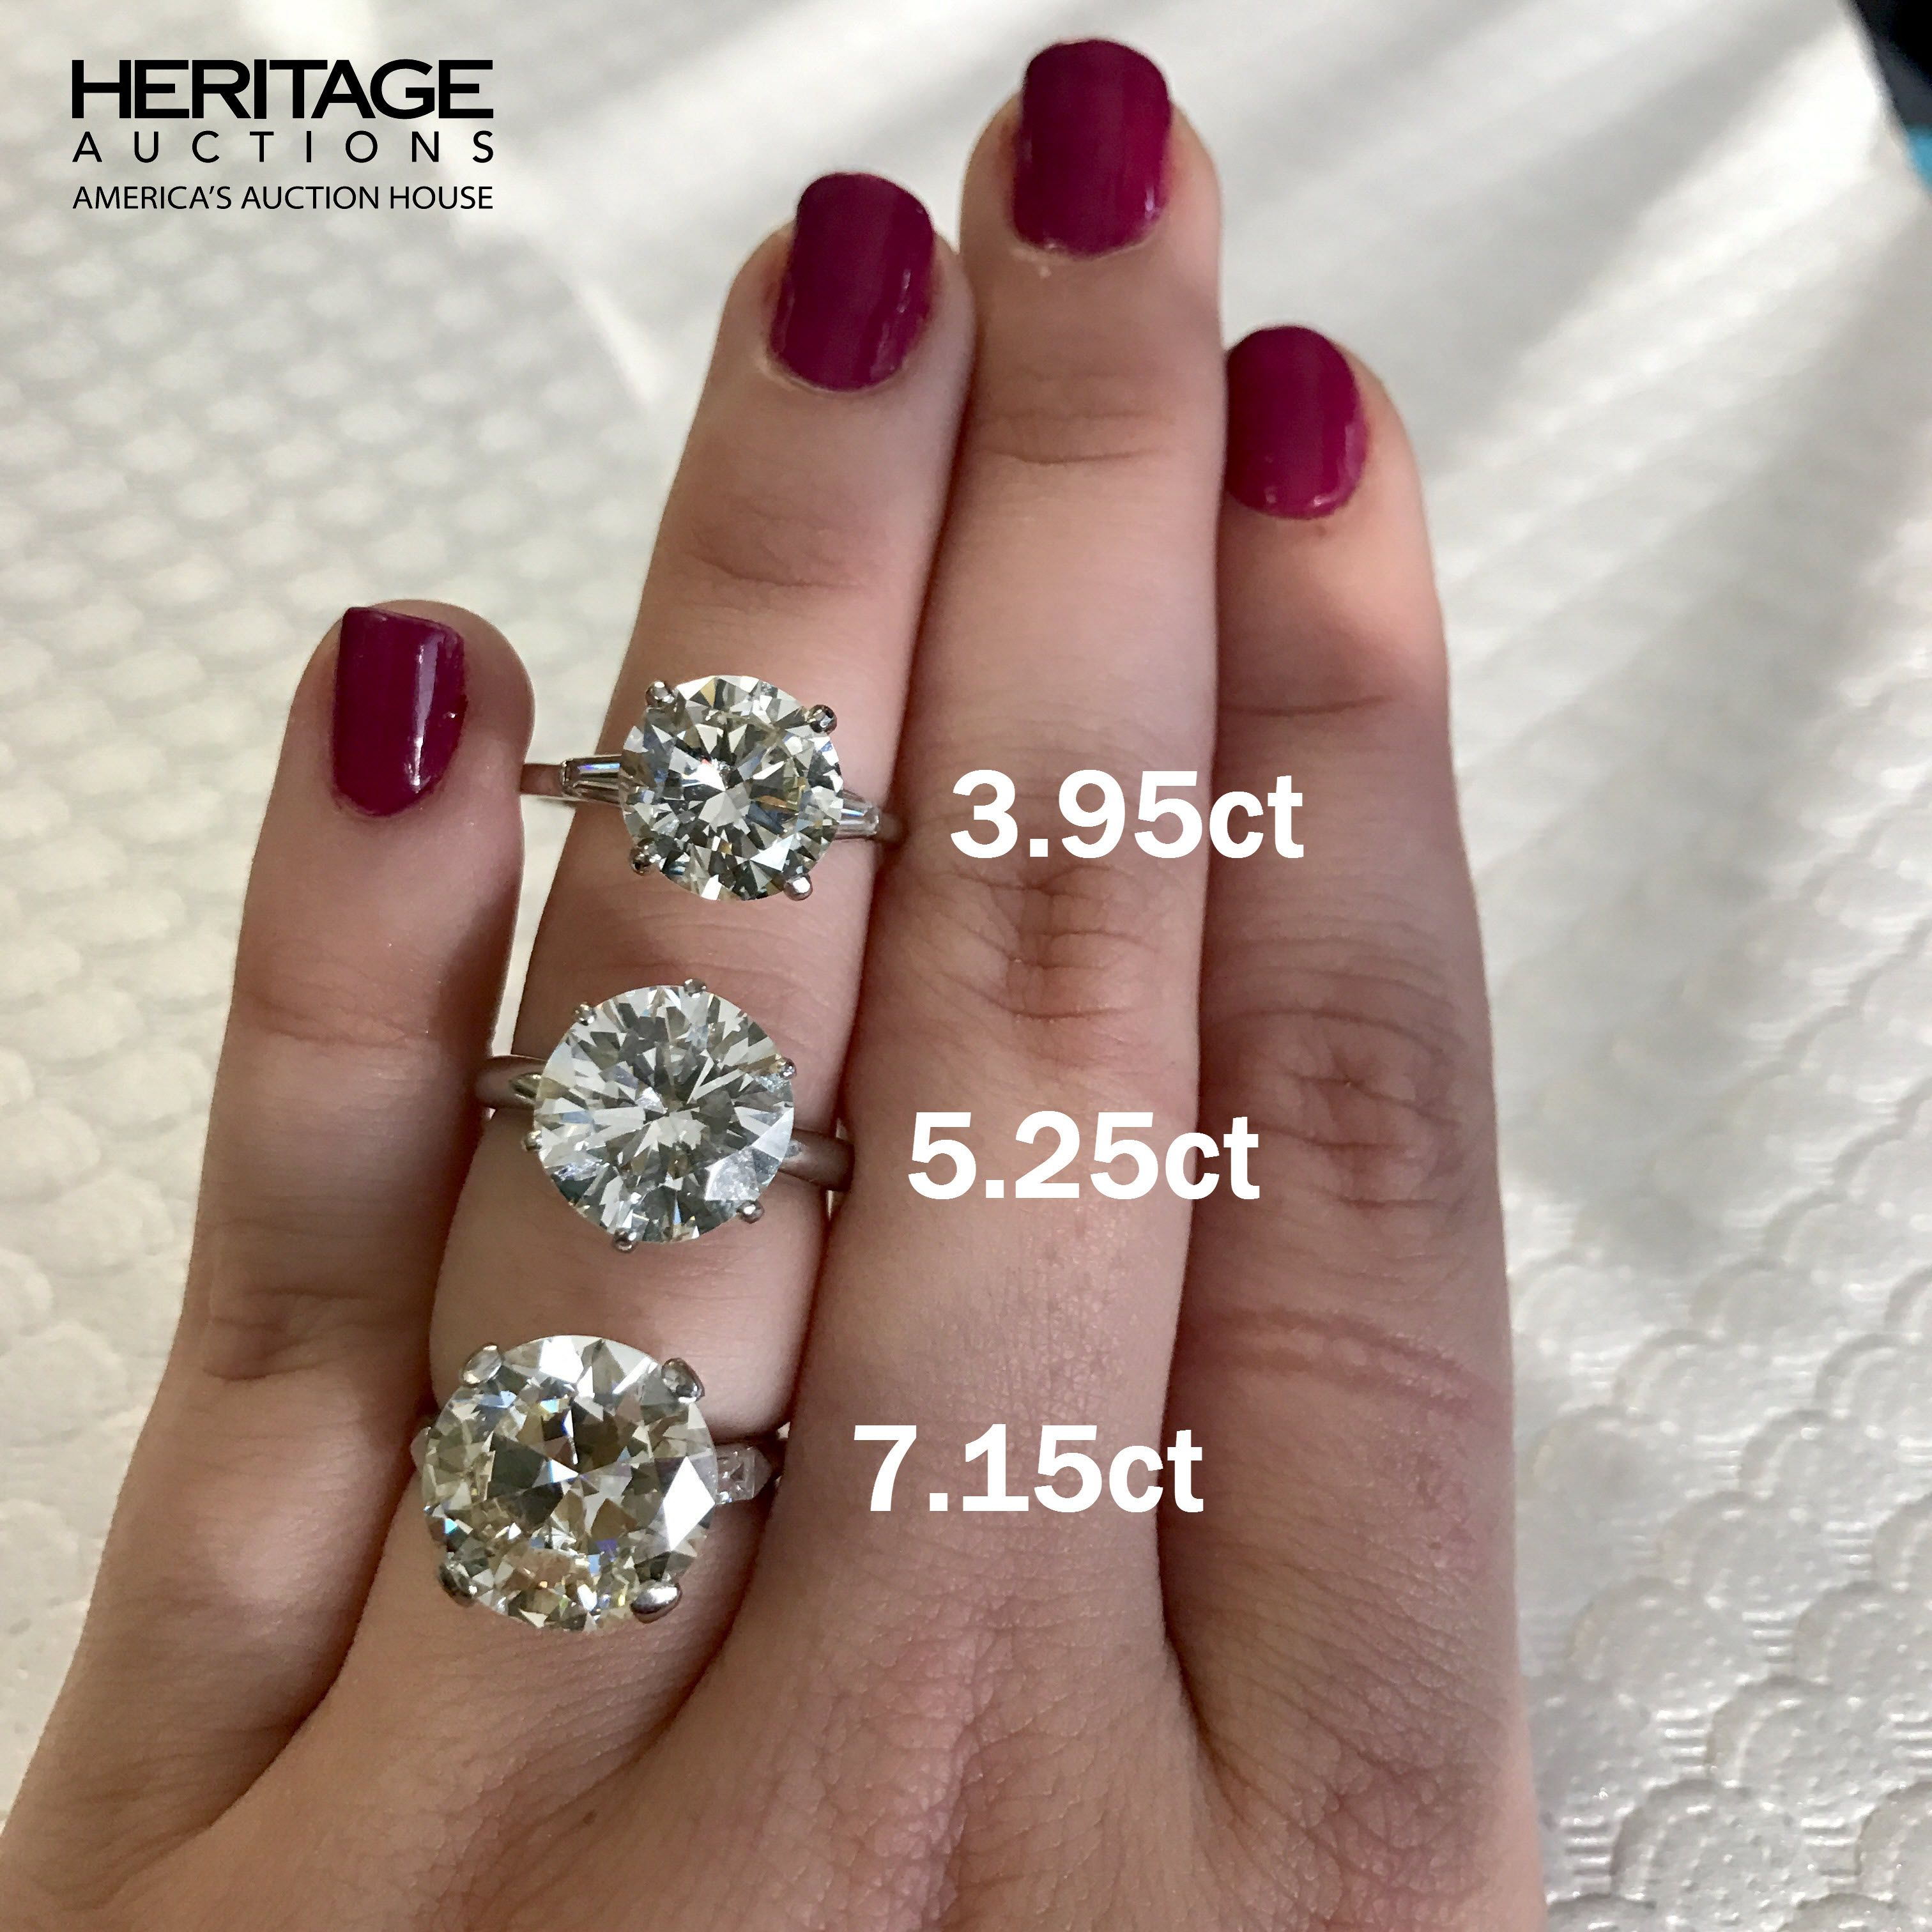 Round Cut Diamond Engagement Ring Carat Size Guide on Hand 3